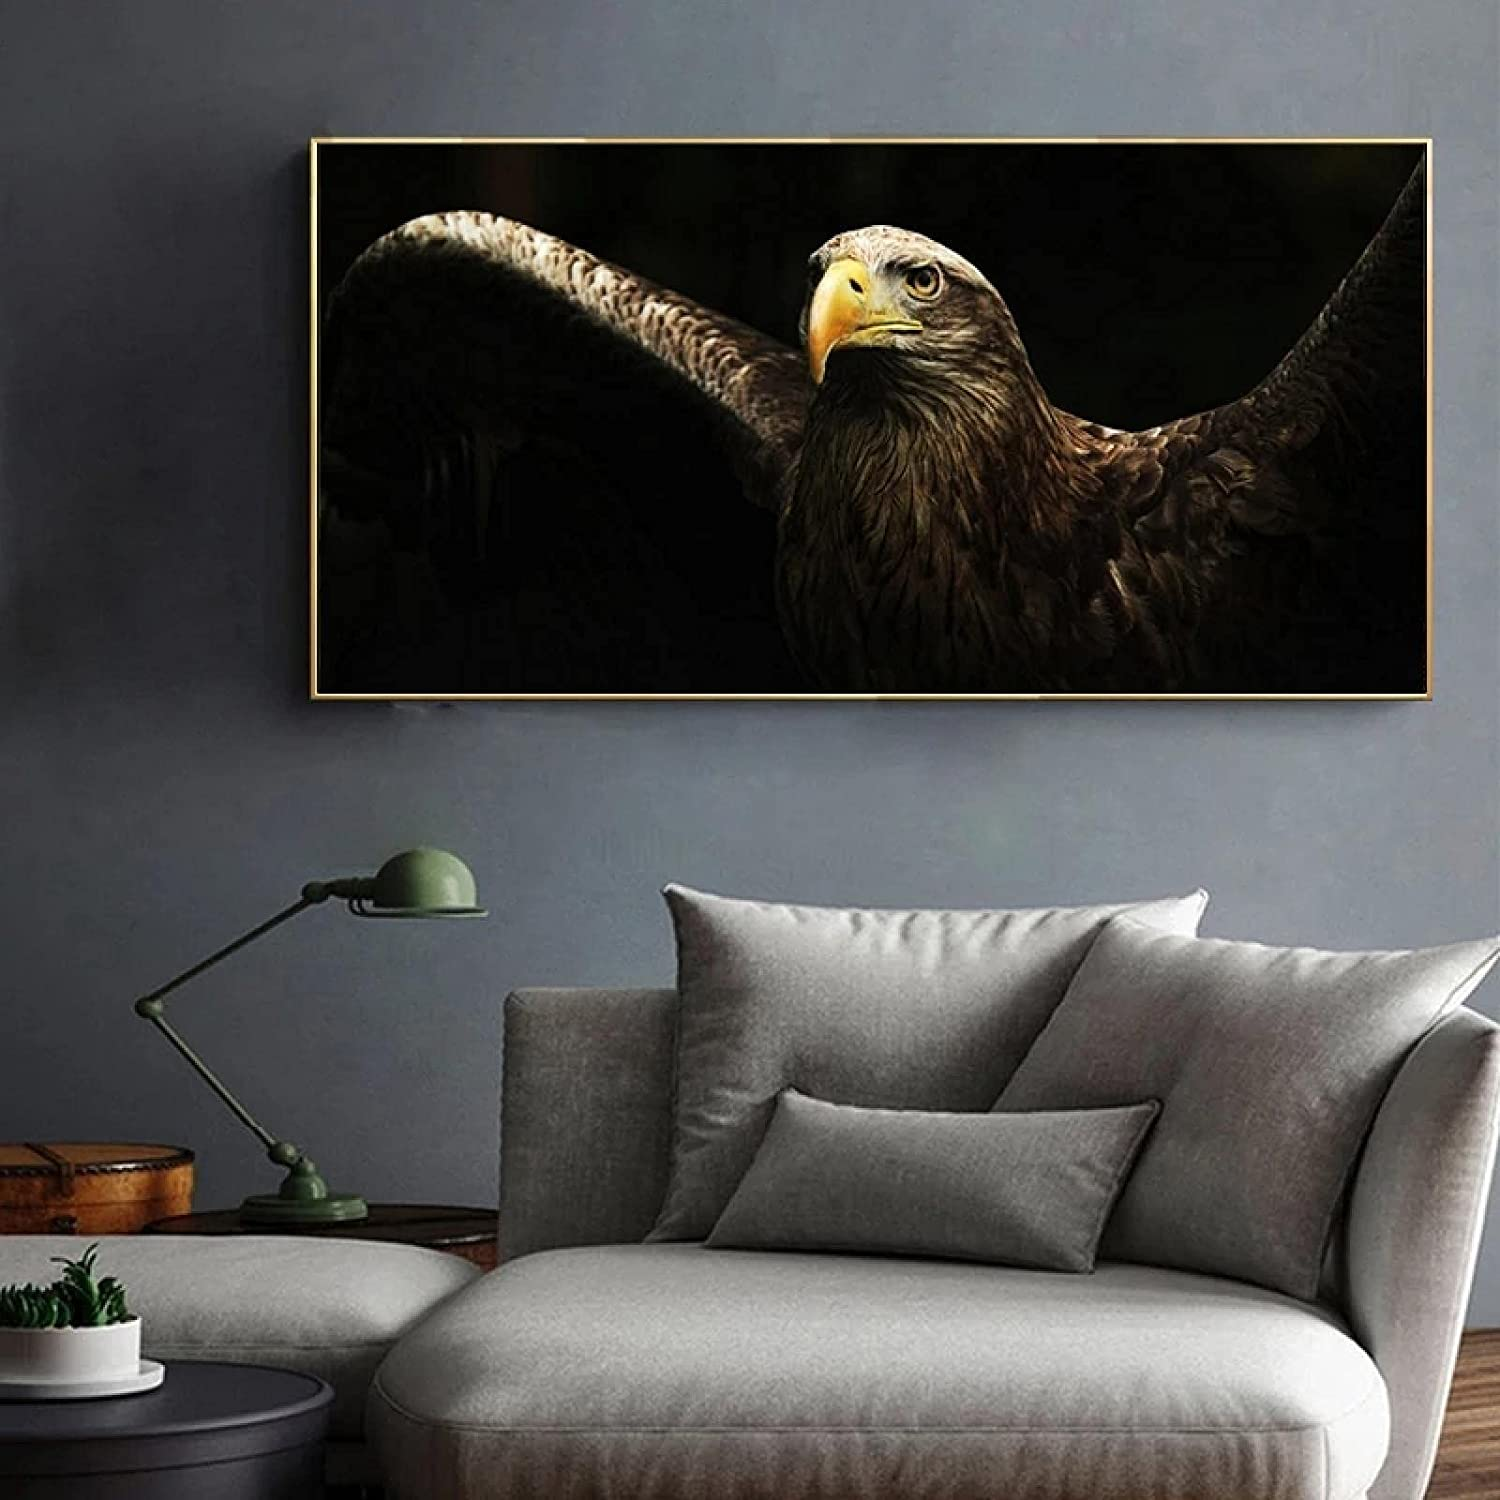 ZXWL Great interest Modern Animal Art High quality new Posters Canvas Painti and Prints Wall